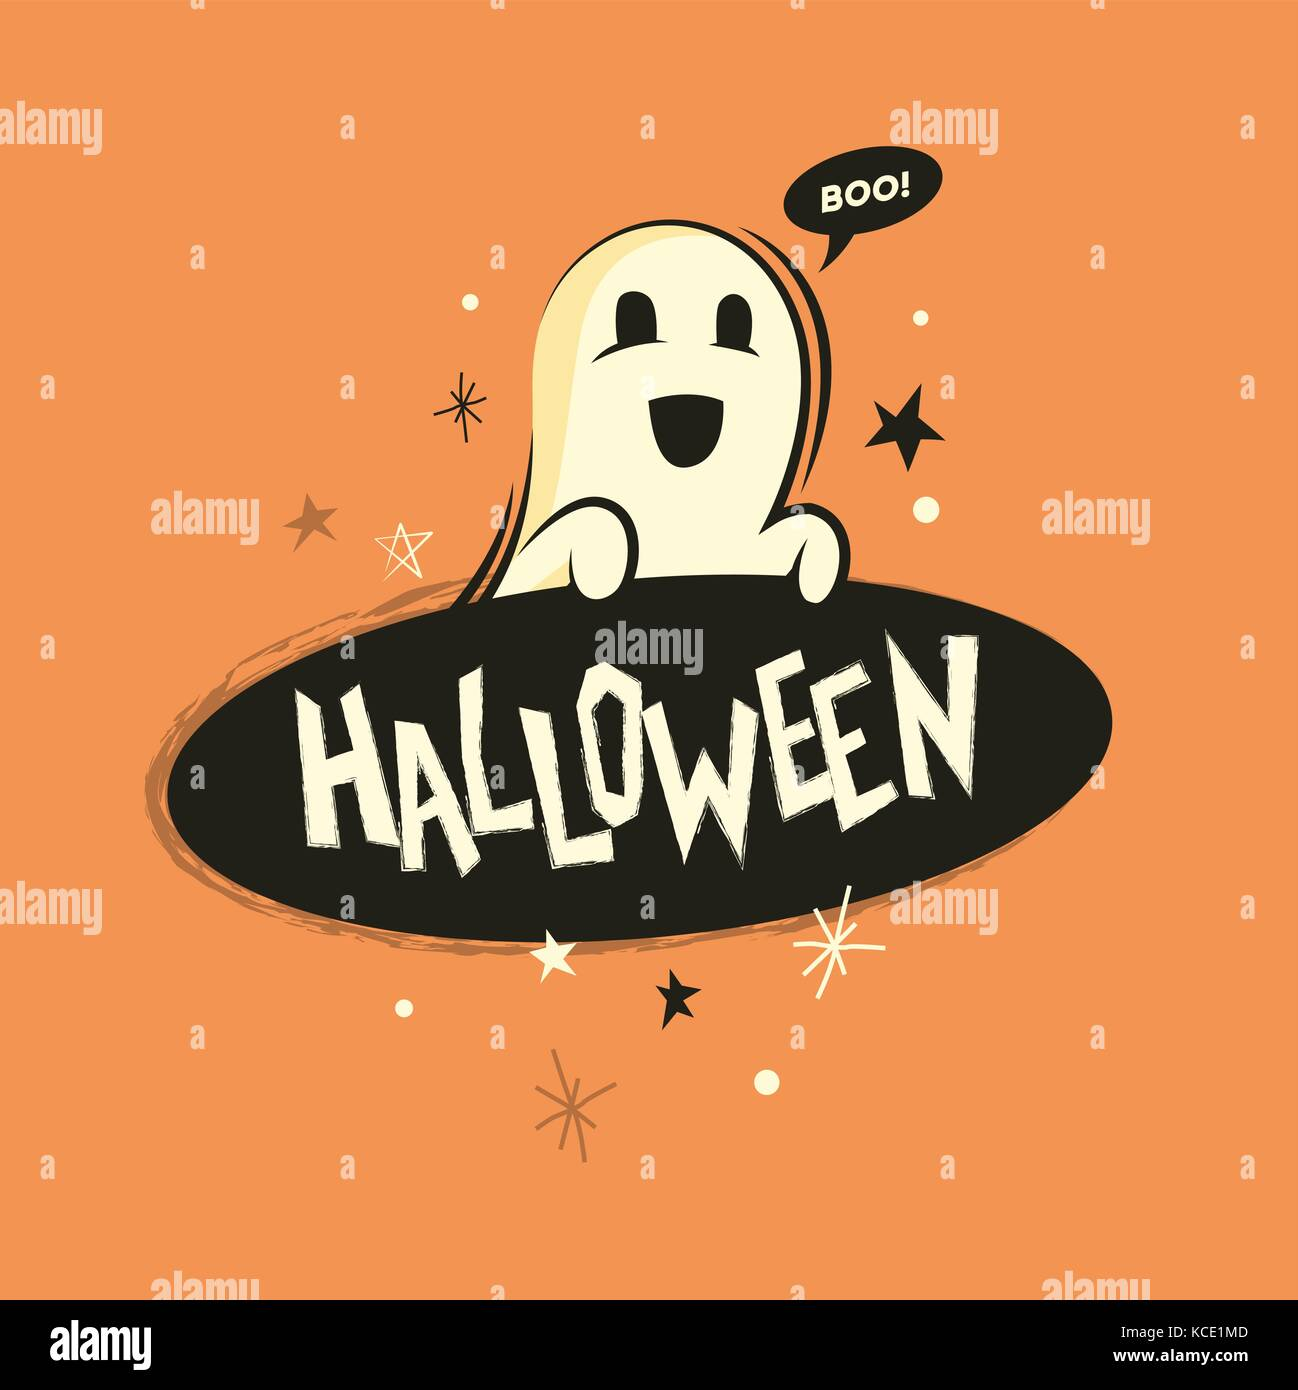 A happy halloween spooky ghost holding a sign. Vector illustration - Stock Image